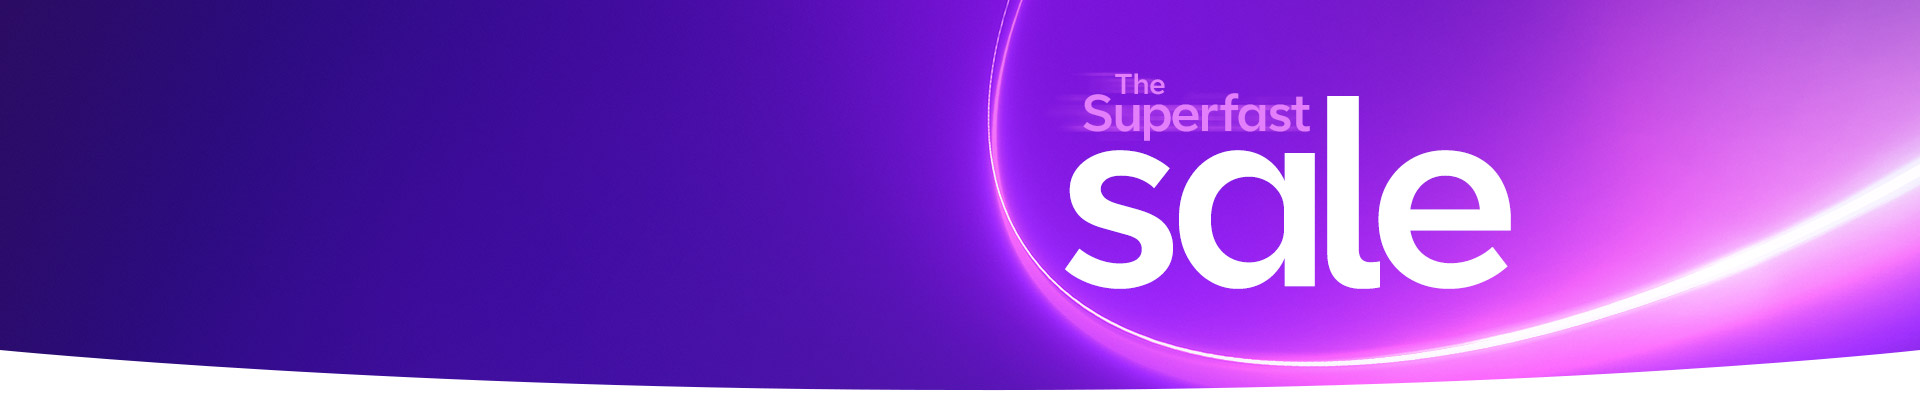 Get broadband deals in our superfast sale